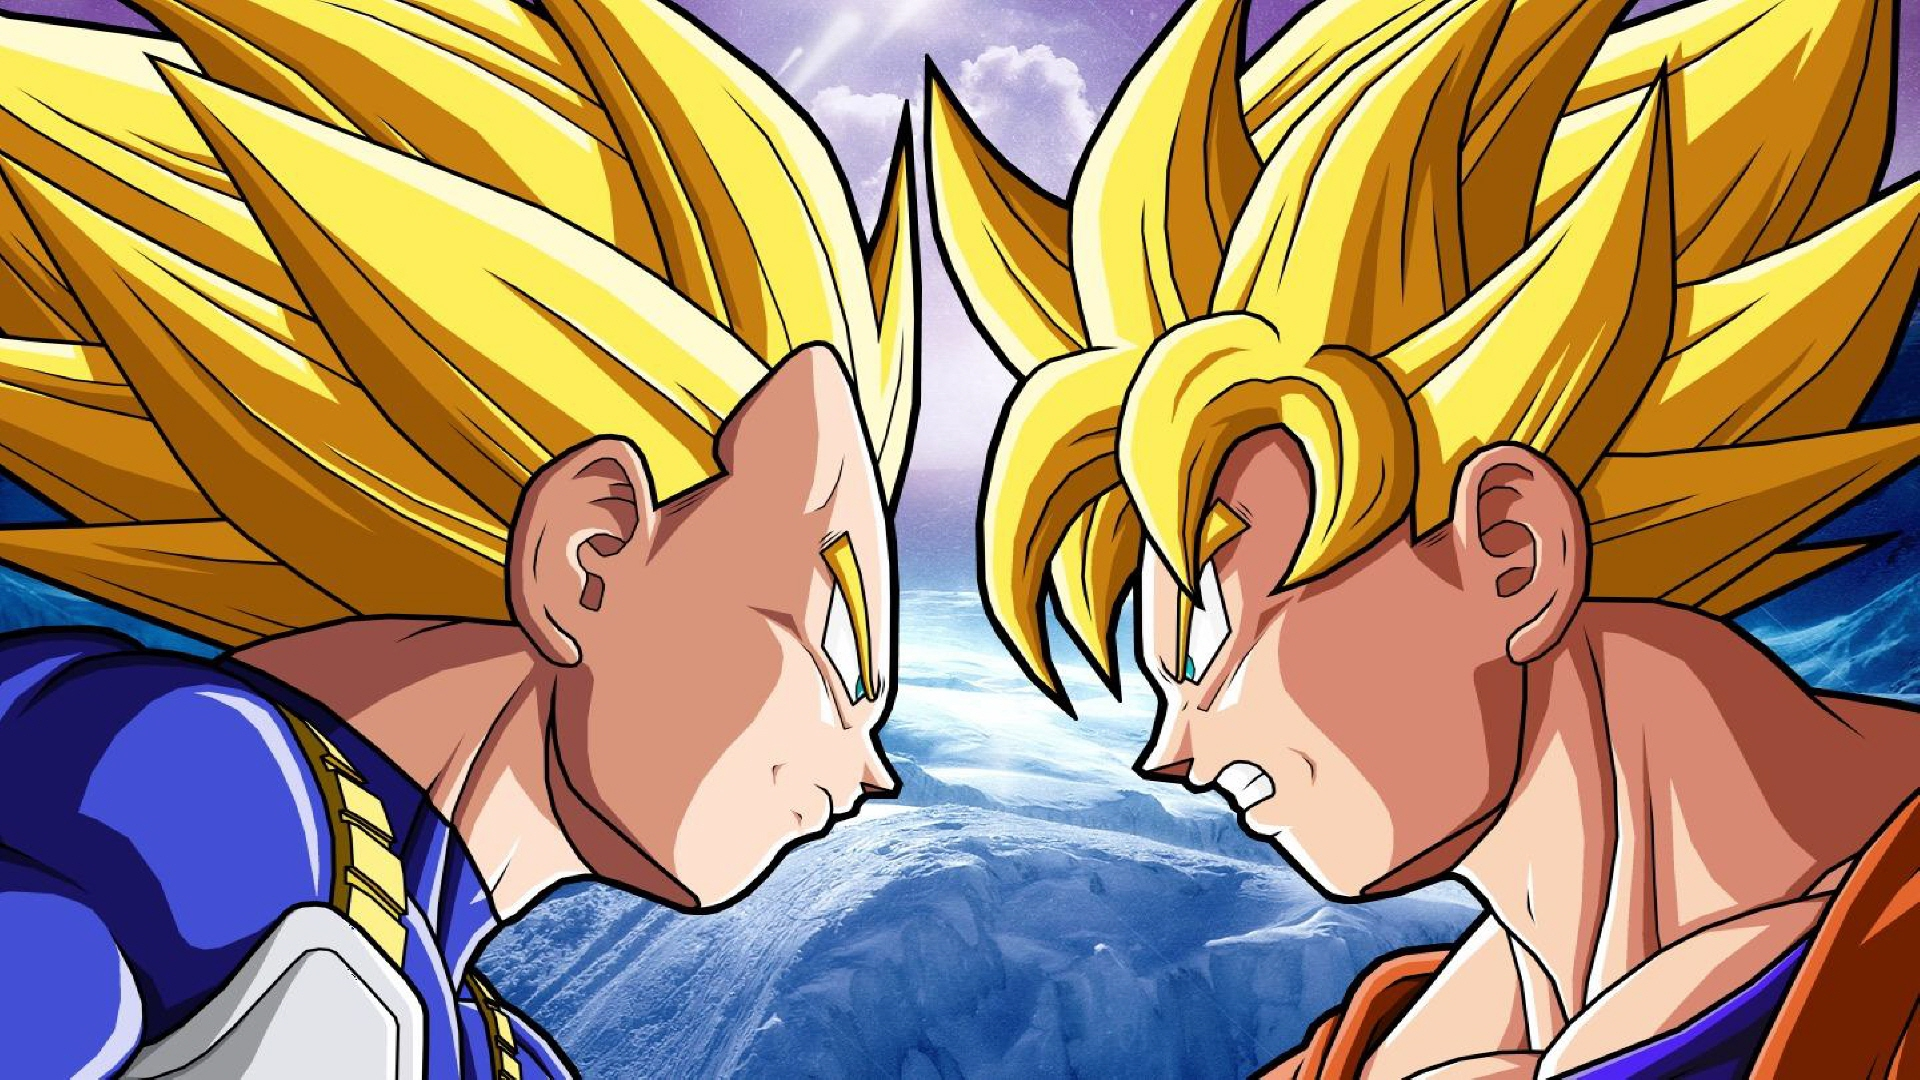 Dragon Ball Z Res: 1920x1080 HD / Size:1043kb. Views: 709021